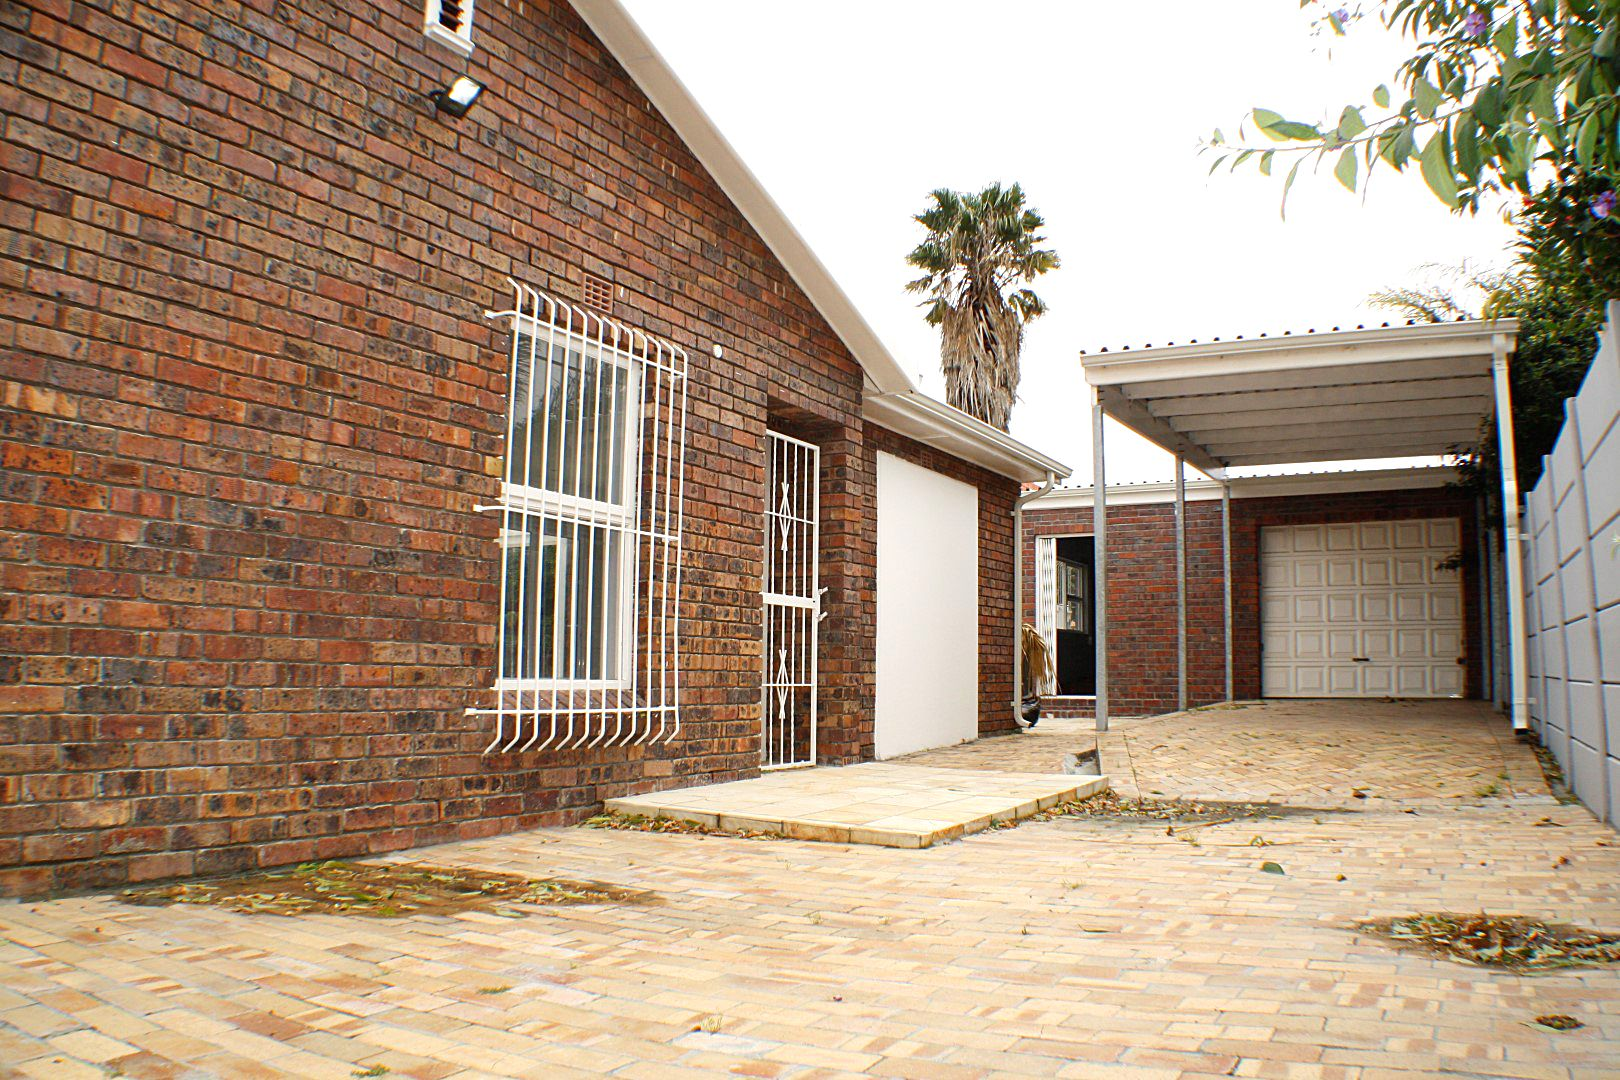 3 Bedroom House for sale in Table View ENT0067631 : photo#13